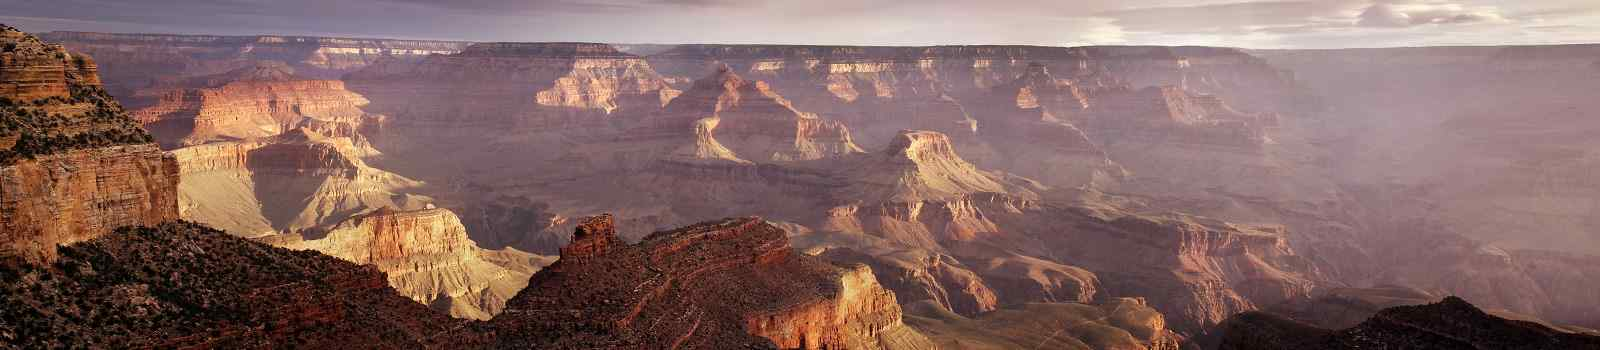 AMERICAN-DISCOVERY  NP Grand Canyon Panorama 149712287